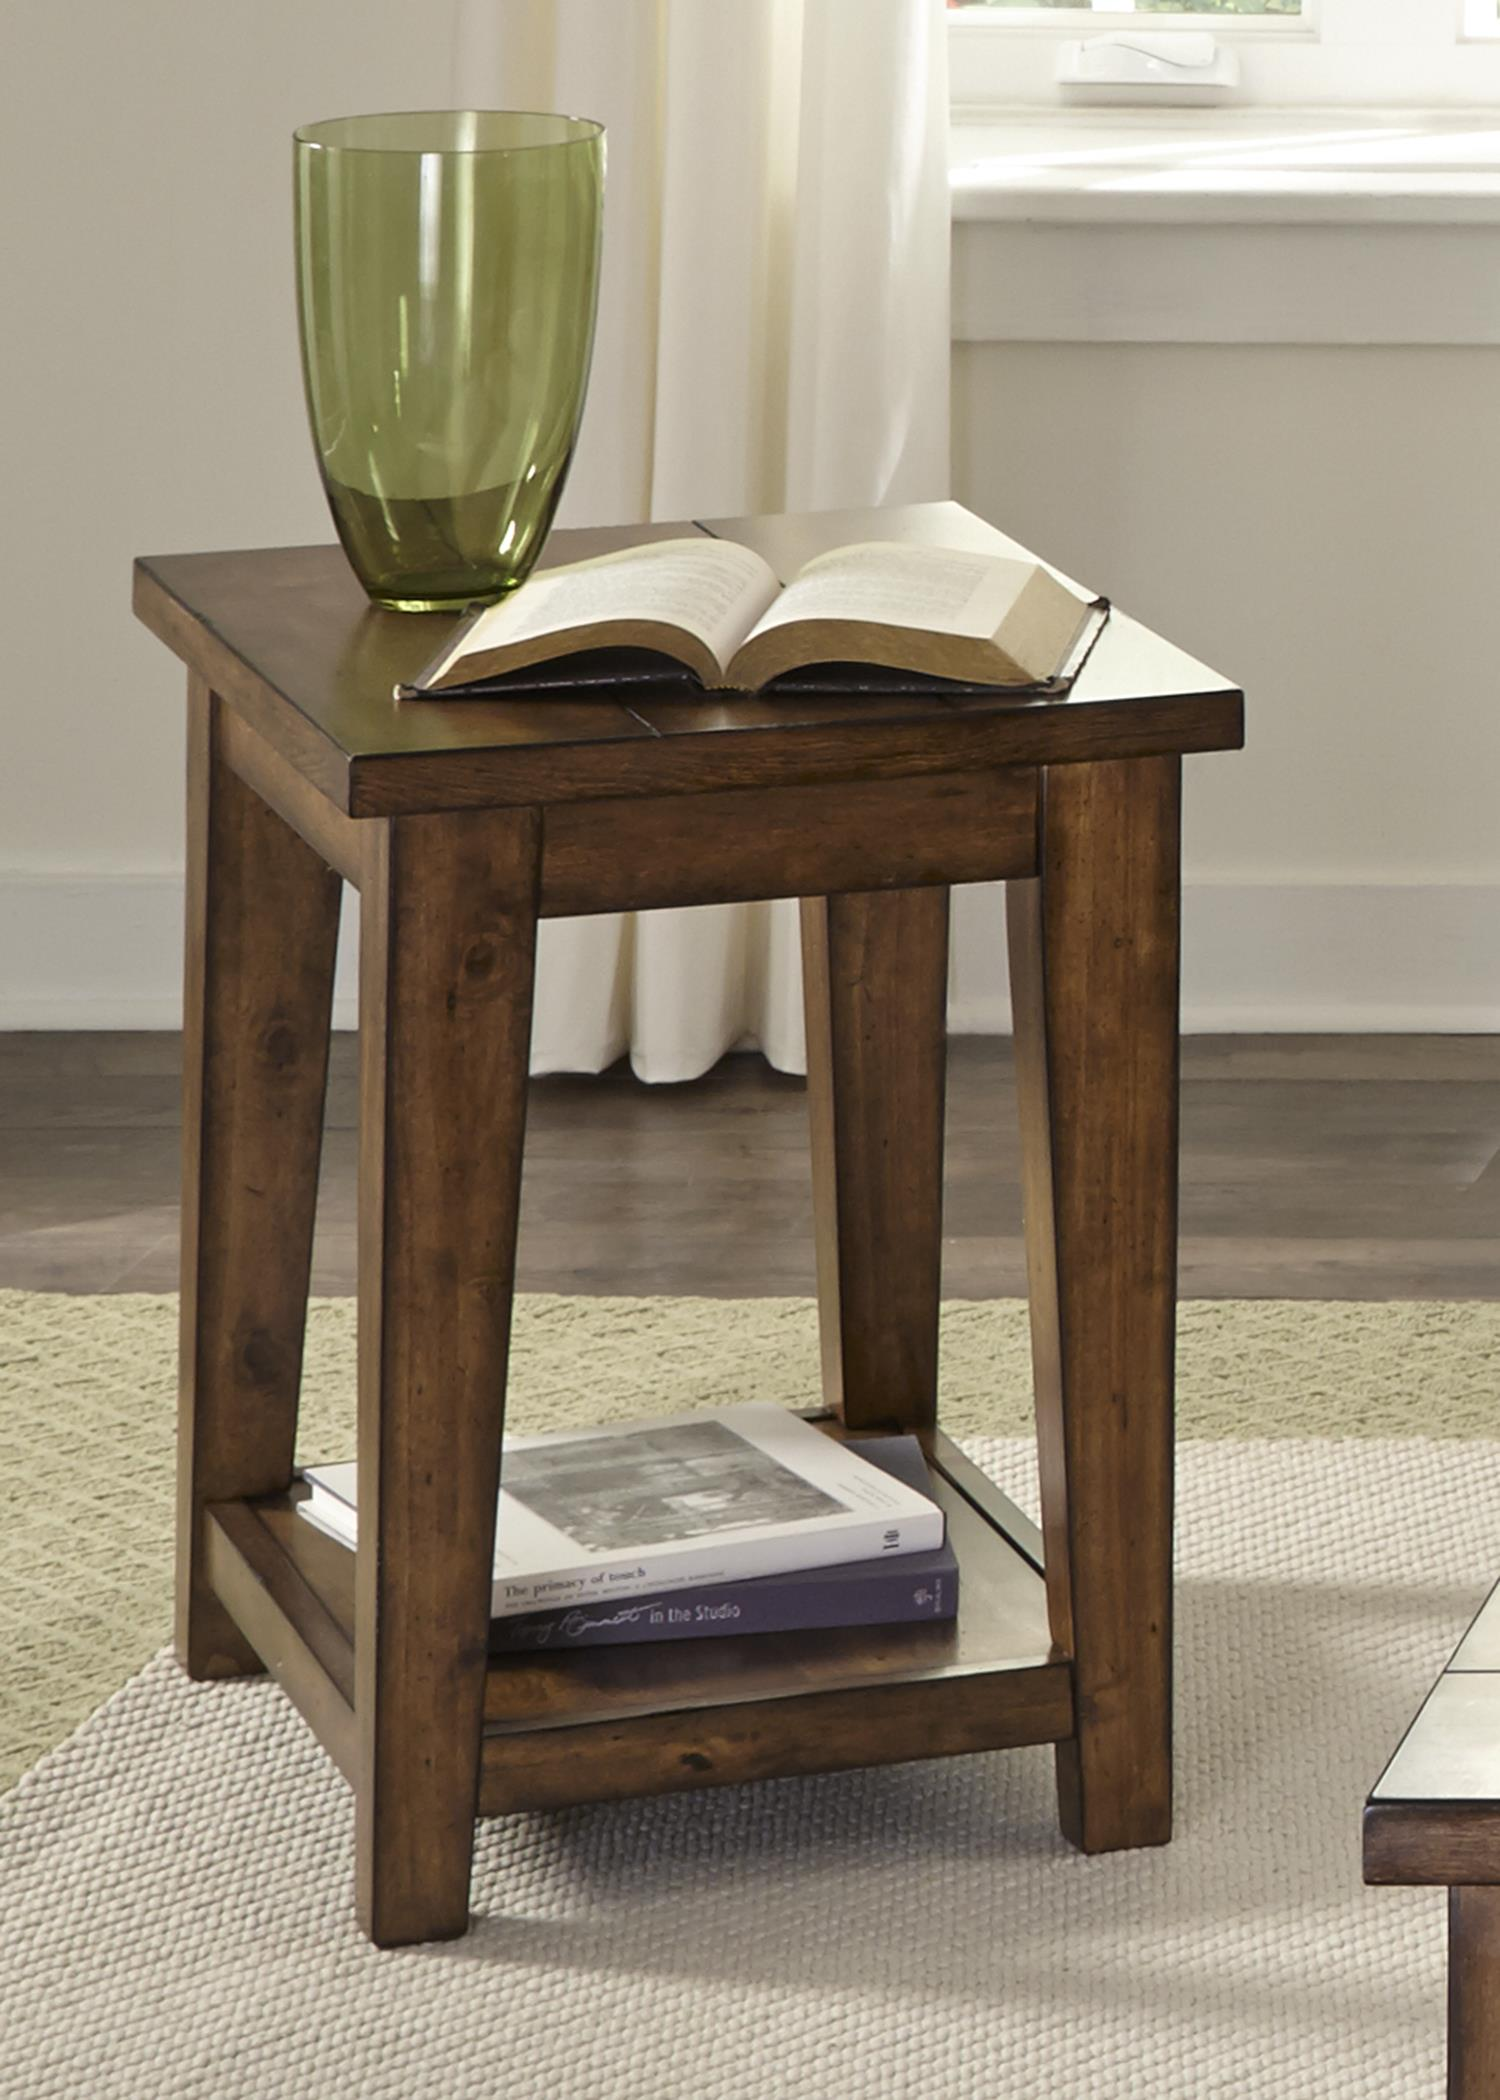 Liberty Furniture Lancaster II Occasional Chair Side Table - Item Number: 712-OT1021